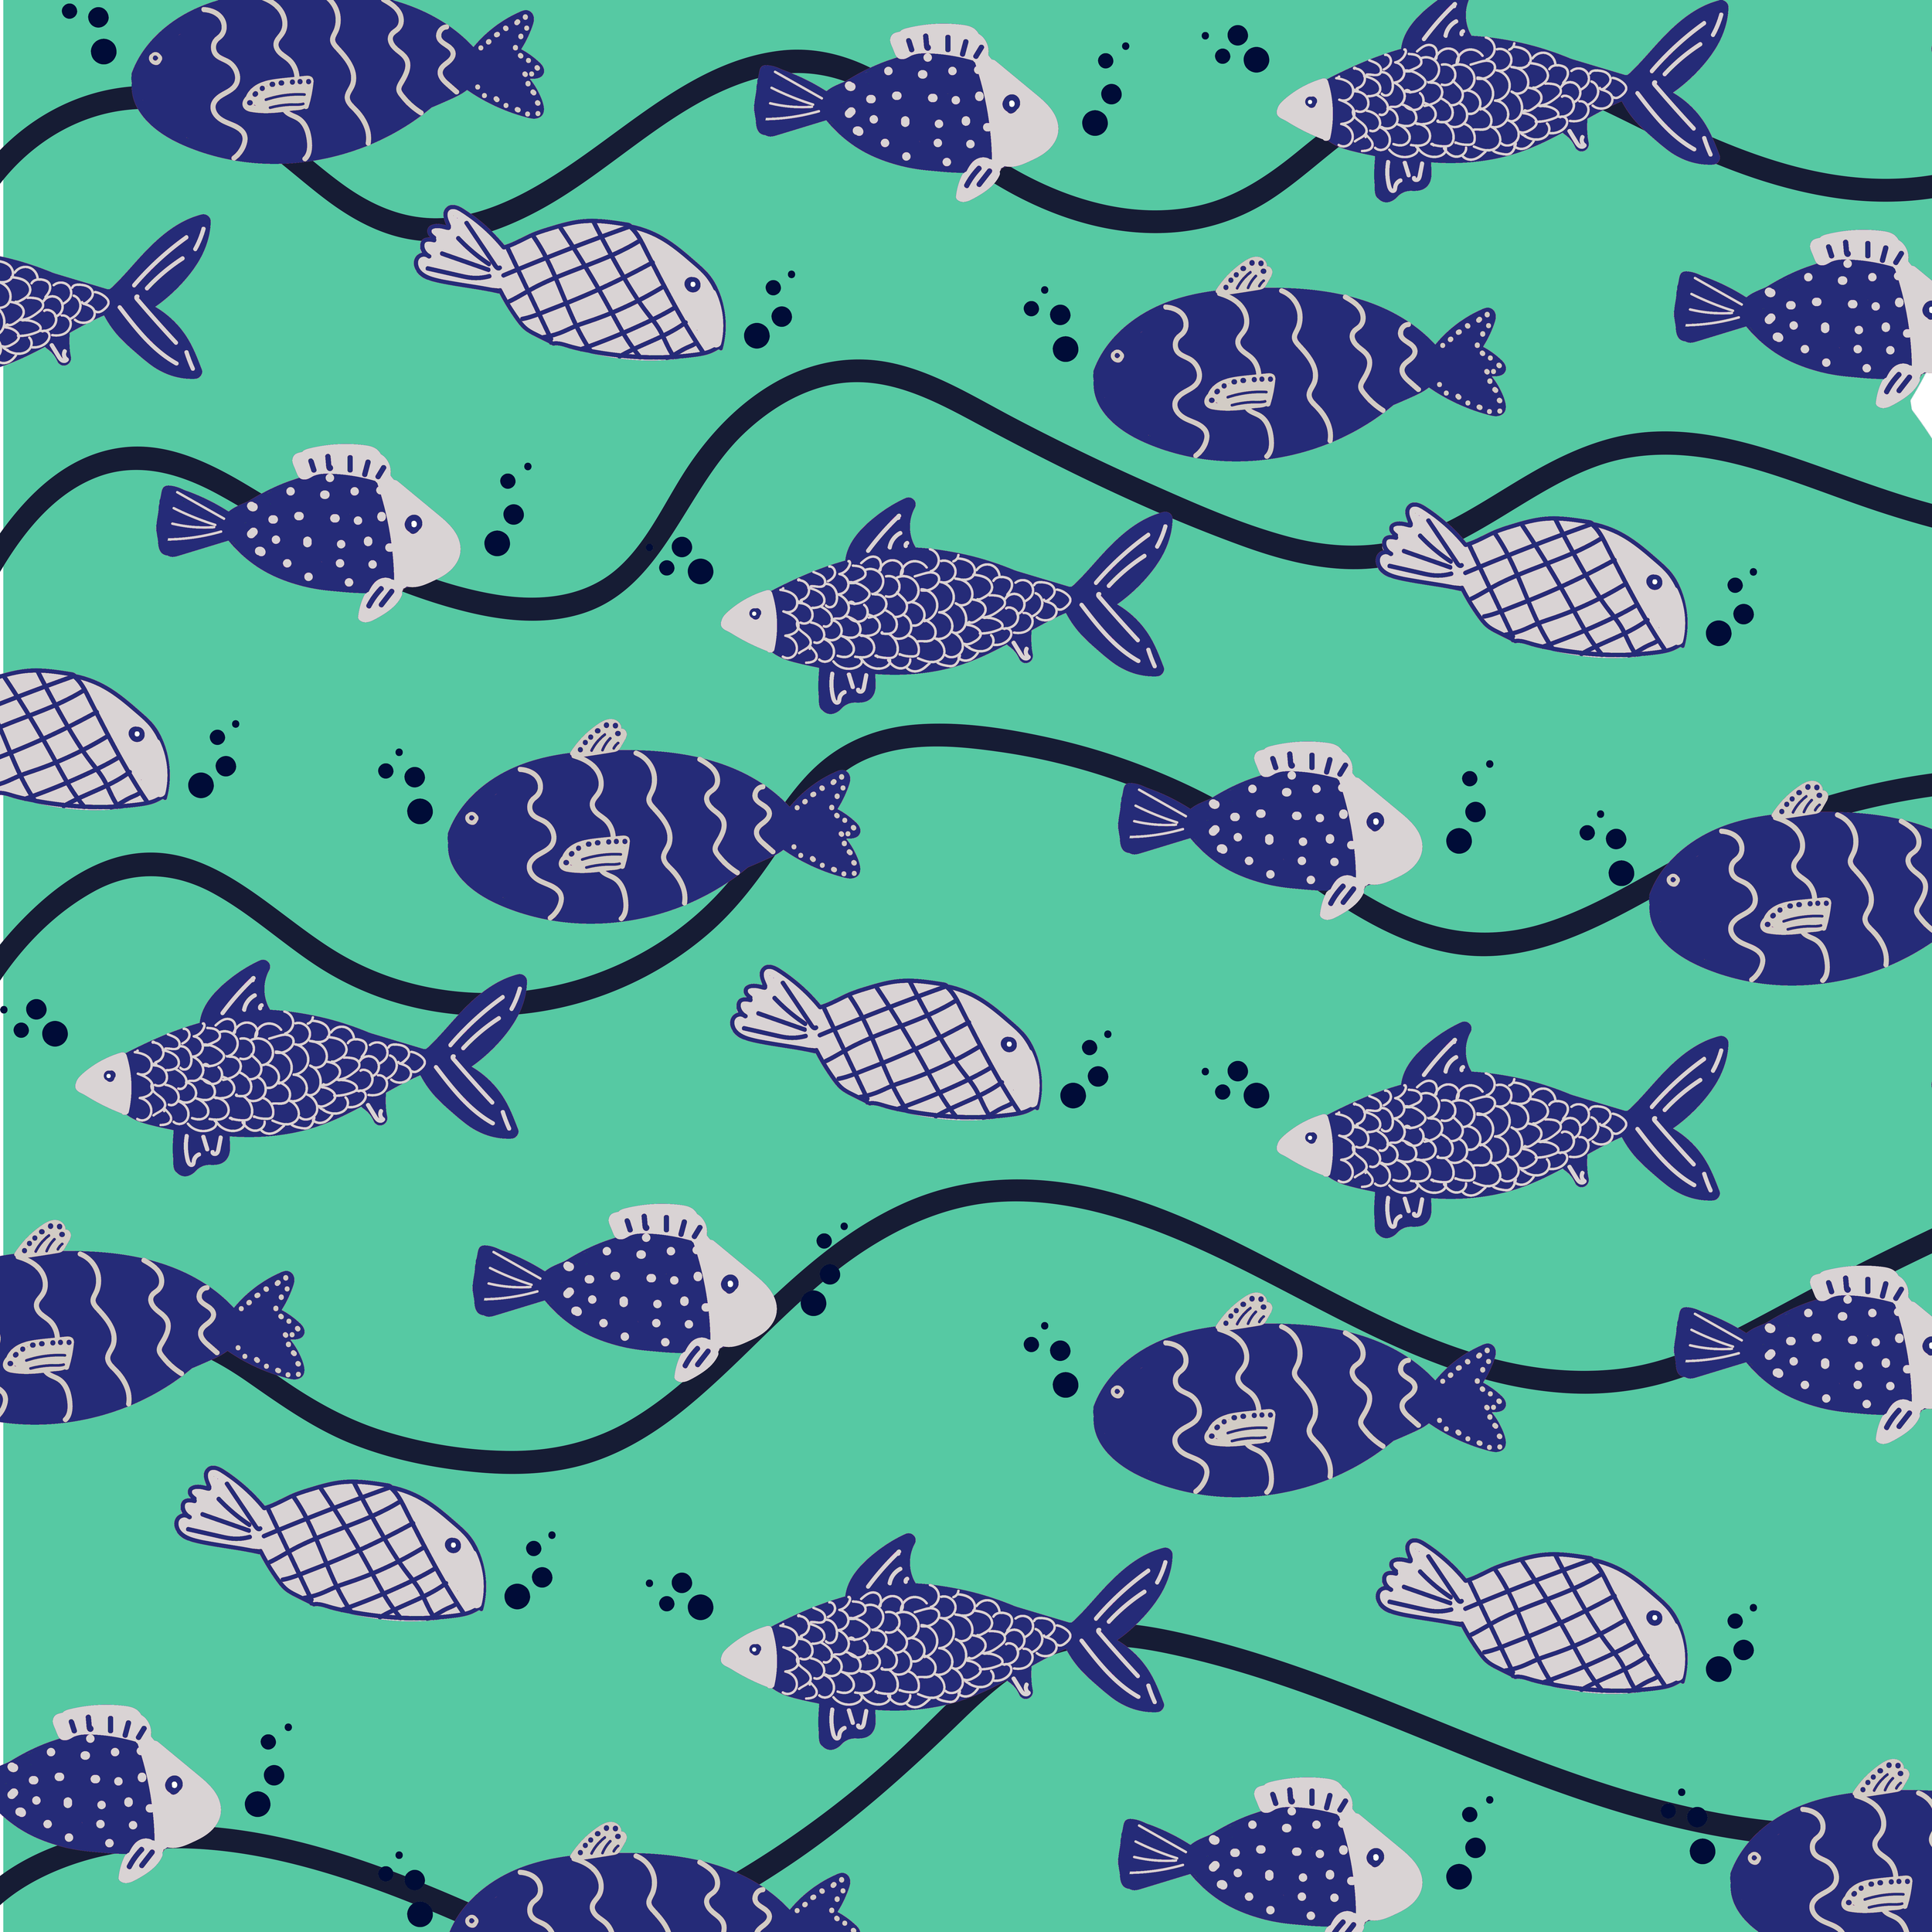 fishpatterngreenblue (1).png